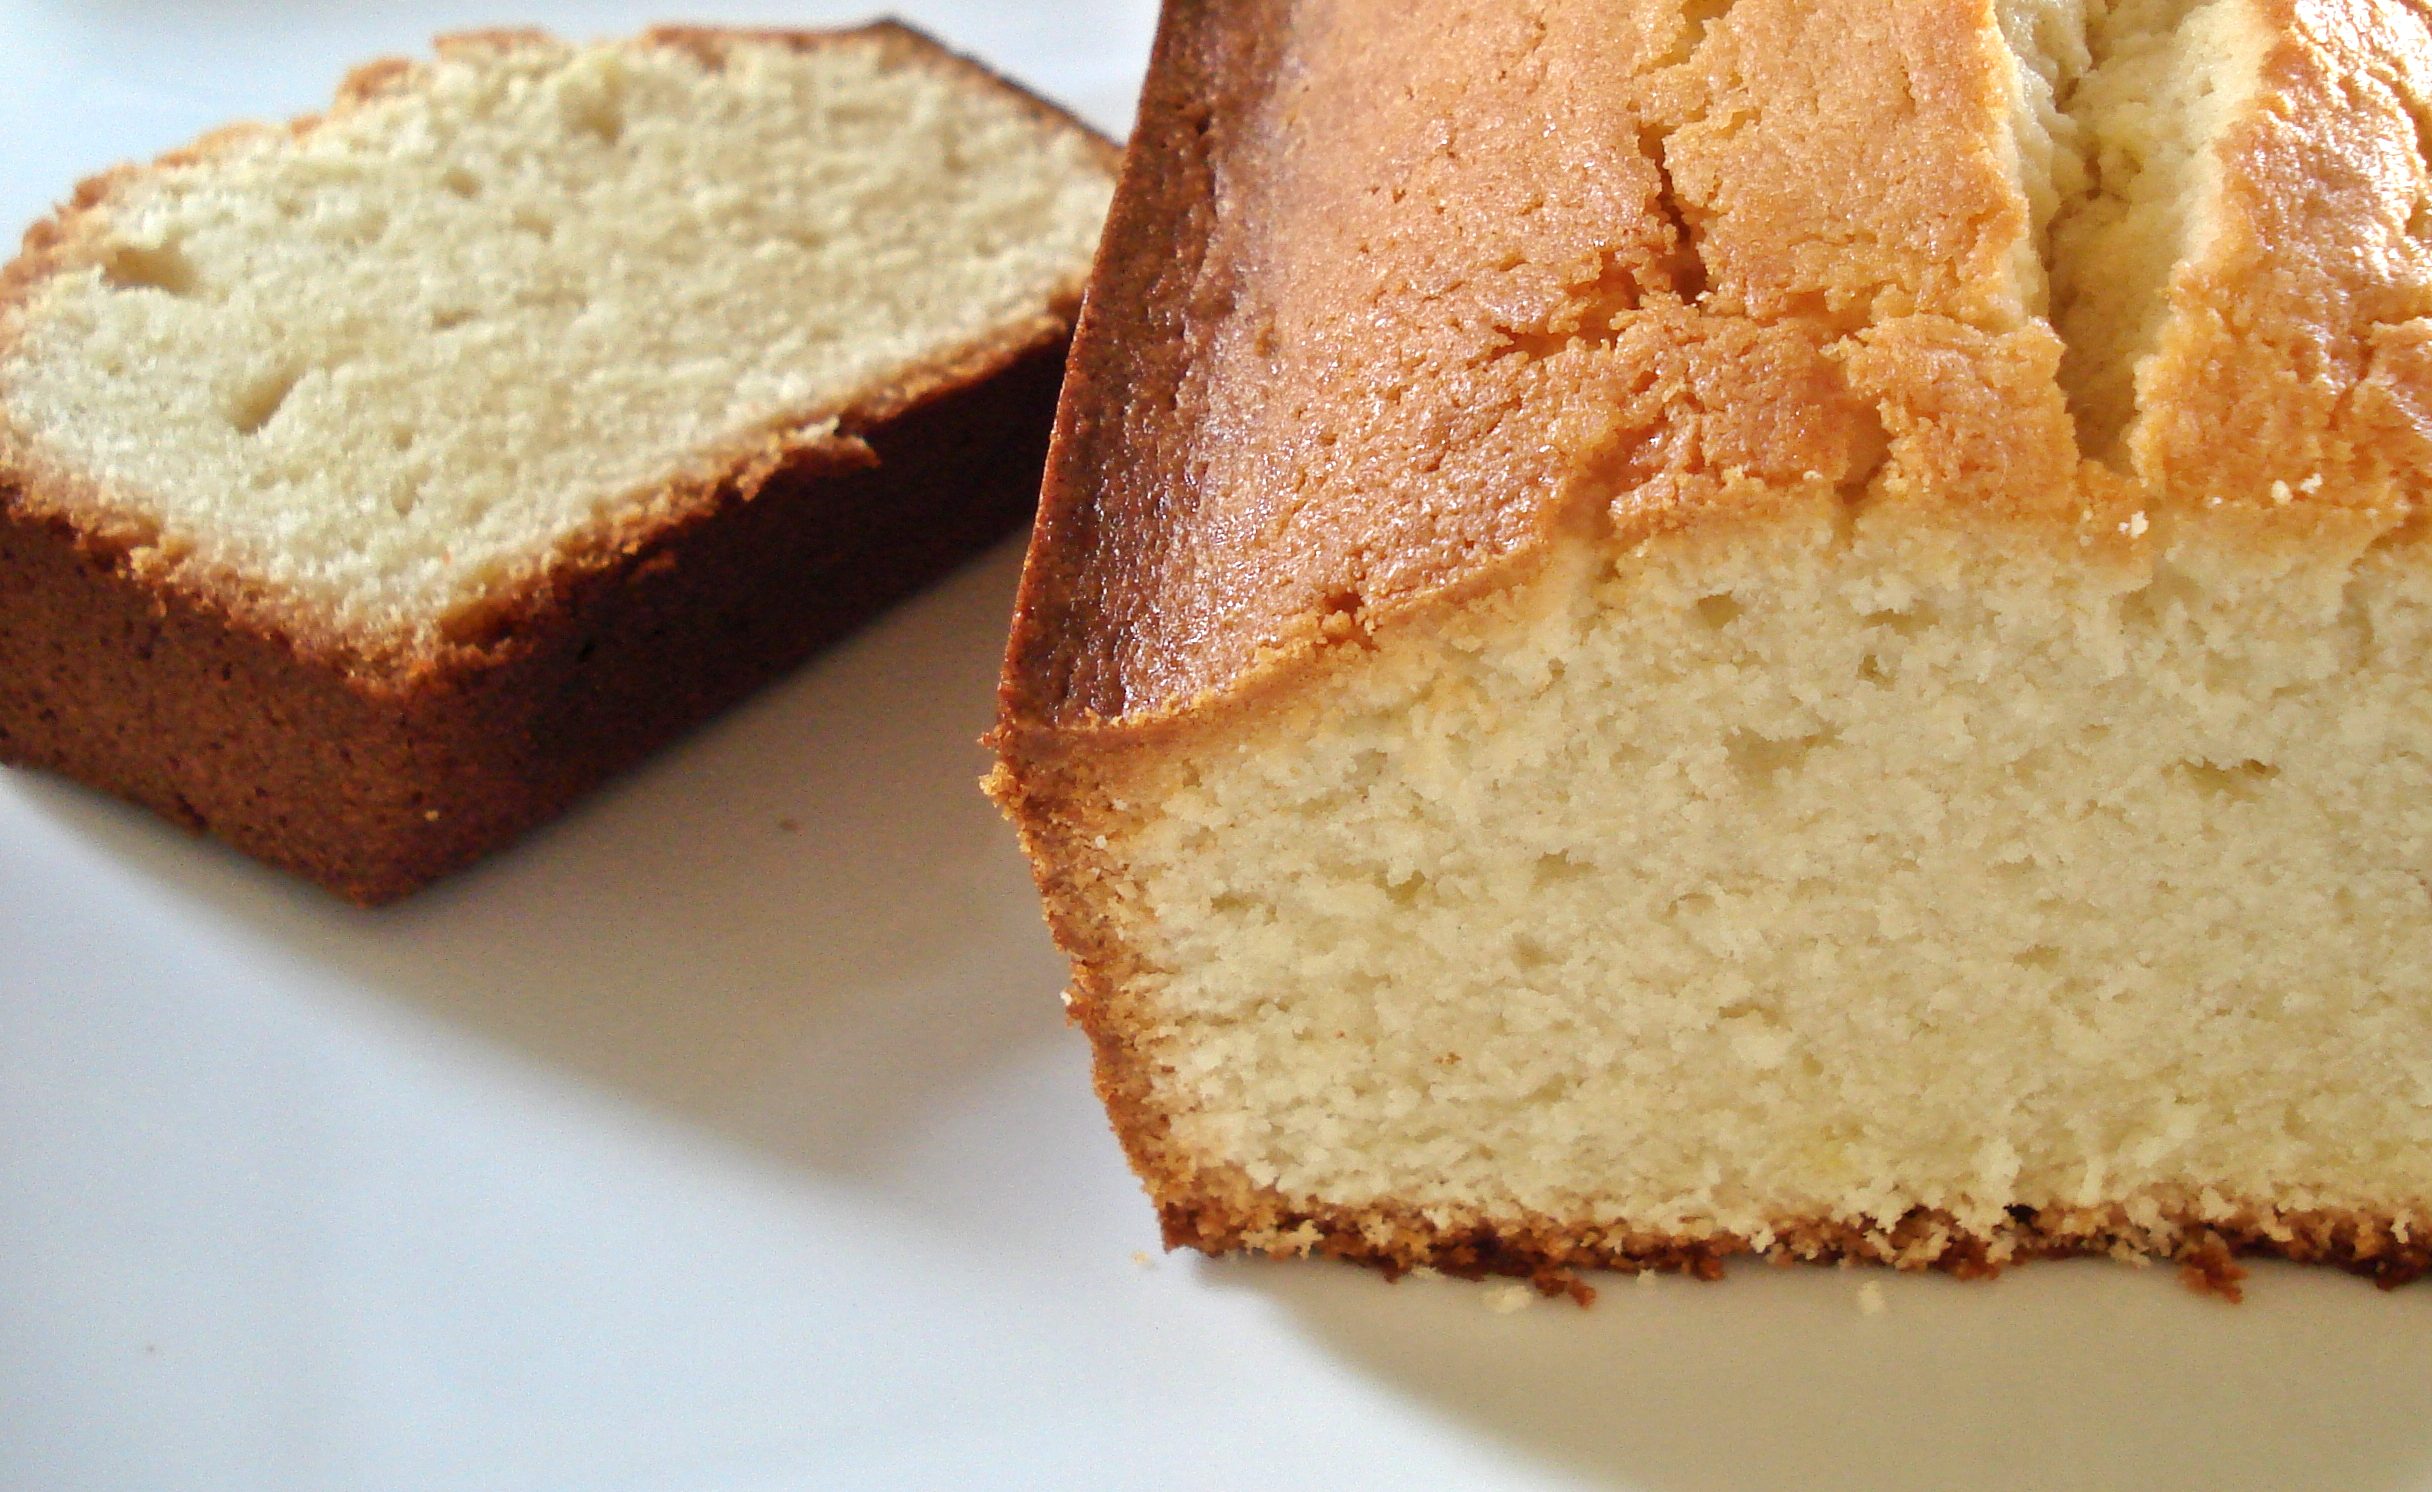 Cream Cheese Pound Cake – Adapted from Martha Stewart